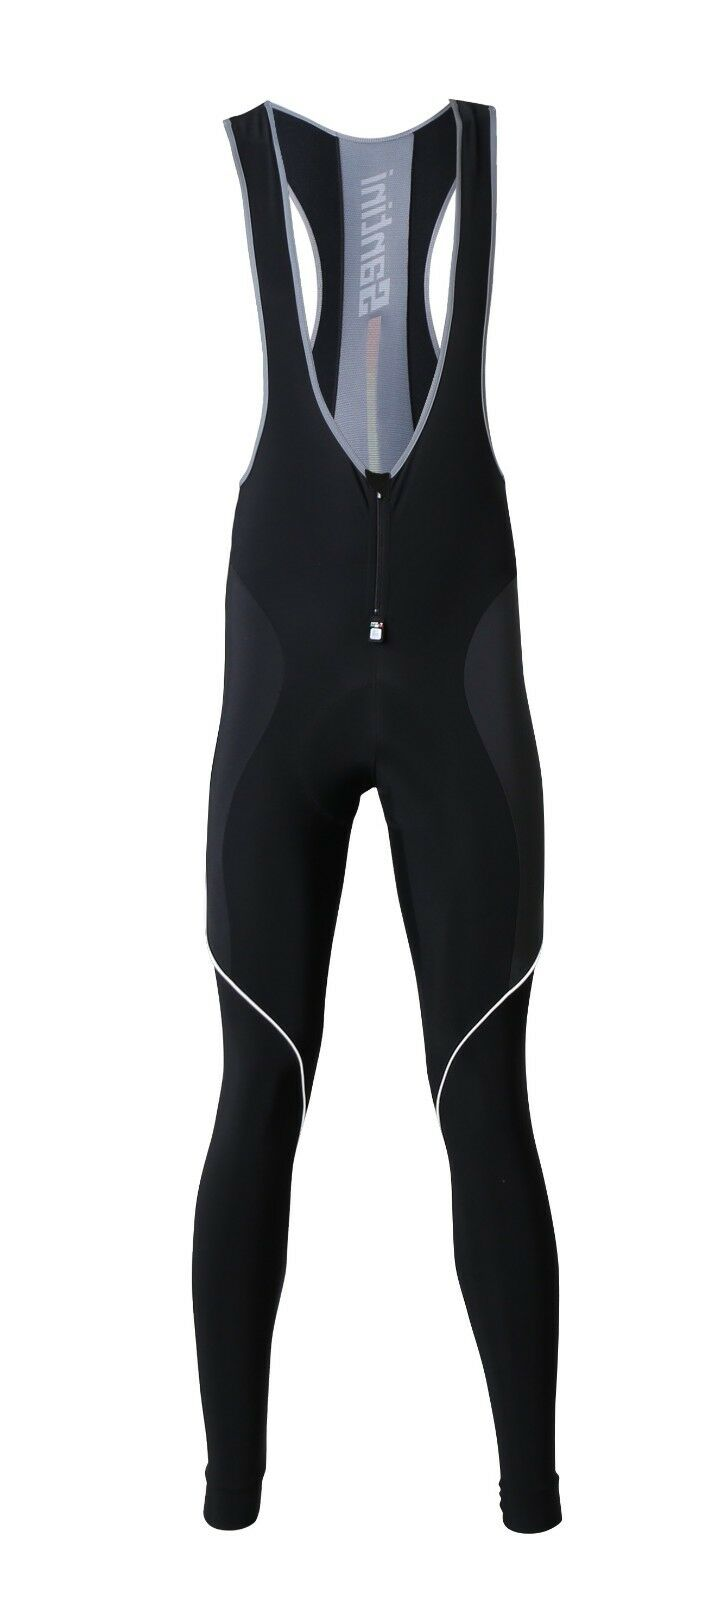 BeHot  Winter Cycling BIB Tights (GIT Chamois)- made in  by Santini